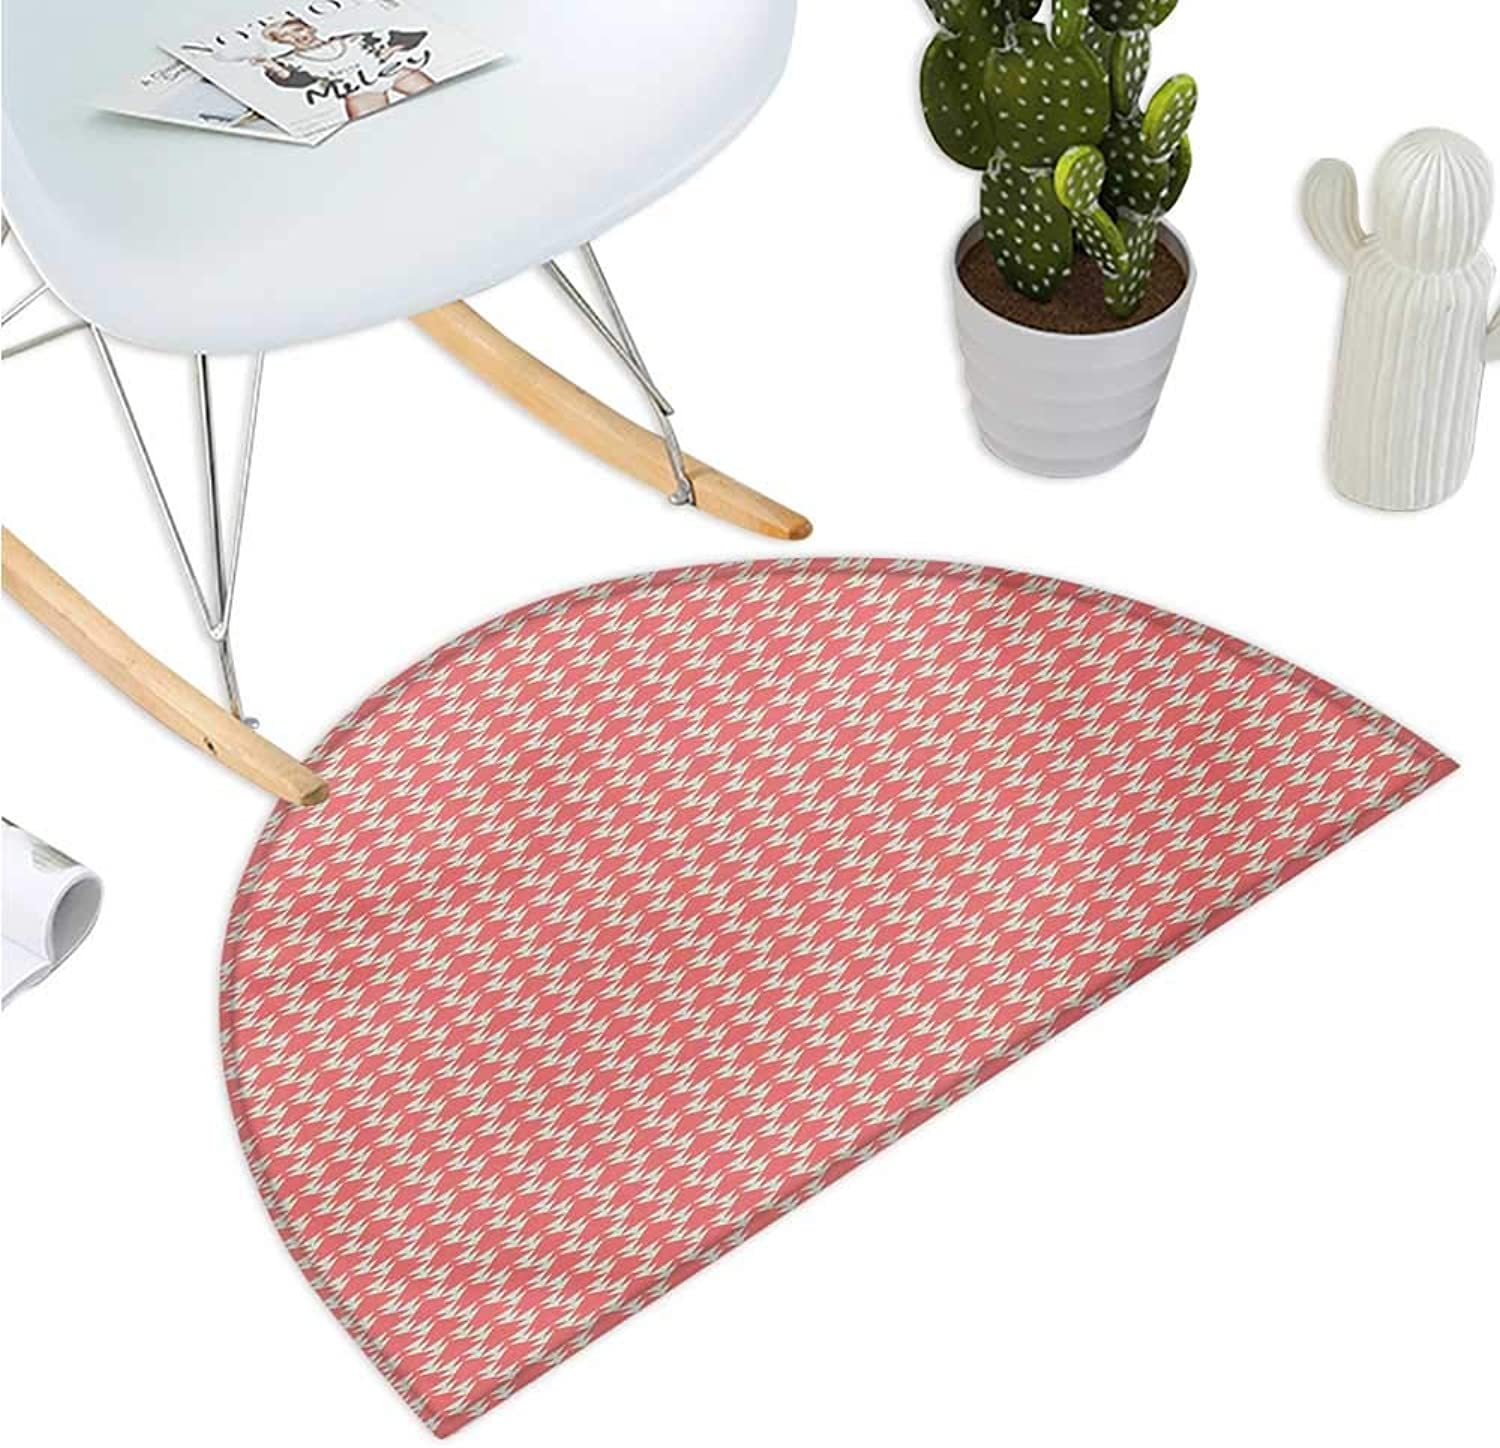 Geometric Half Round Door mats Modern Pattern in Pastel colors greenical Striped Backdrop and Triangles Bathroom Mat H 35.4  xD 53.1  Coral Pale Green